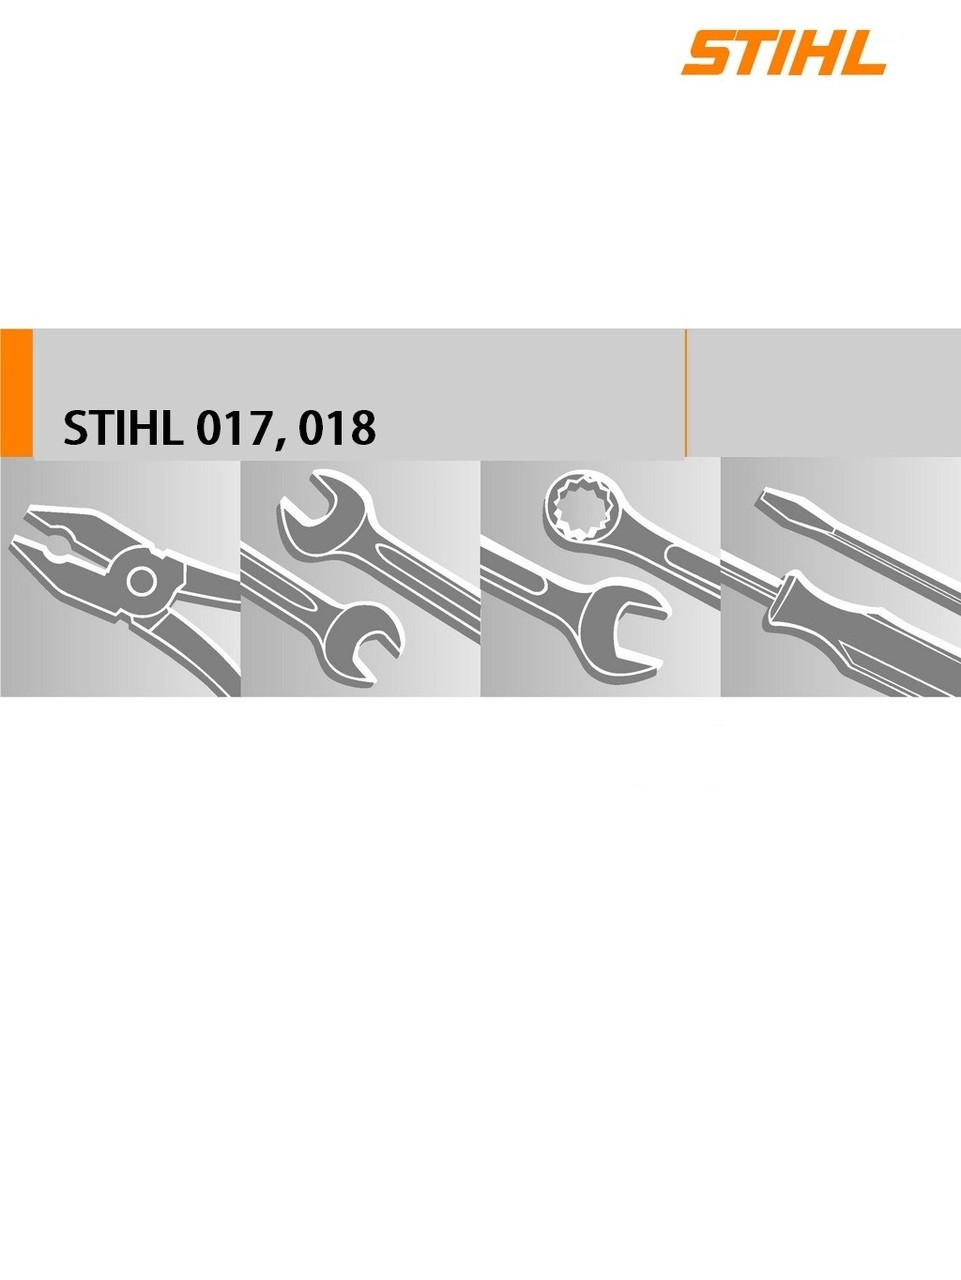 Stihl ignition coil wiring diagram garden questions & answers.